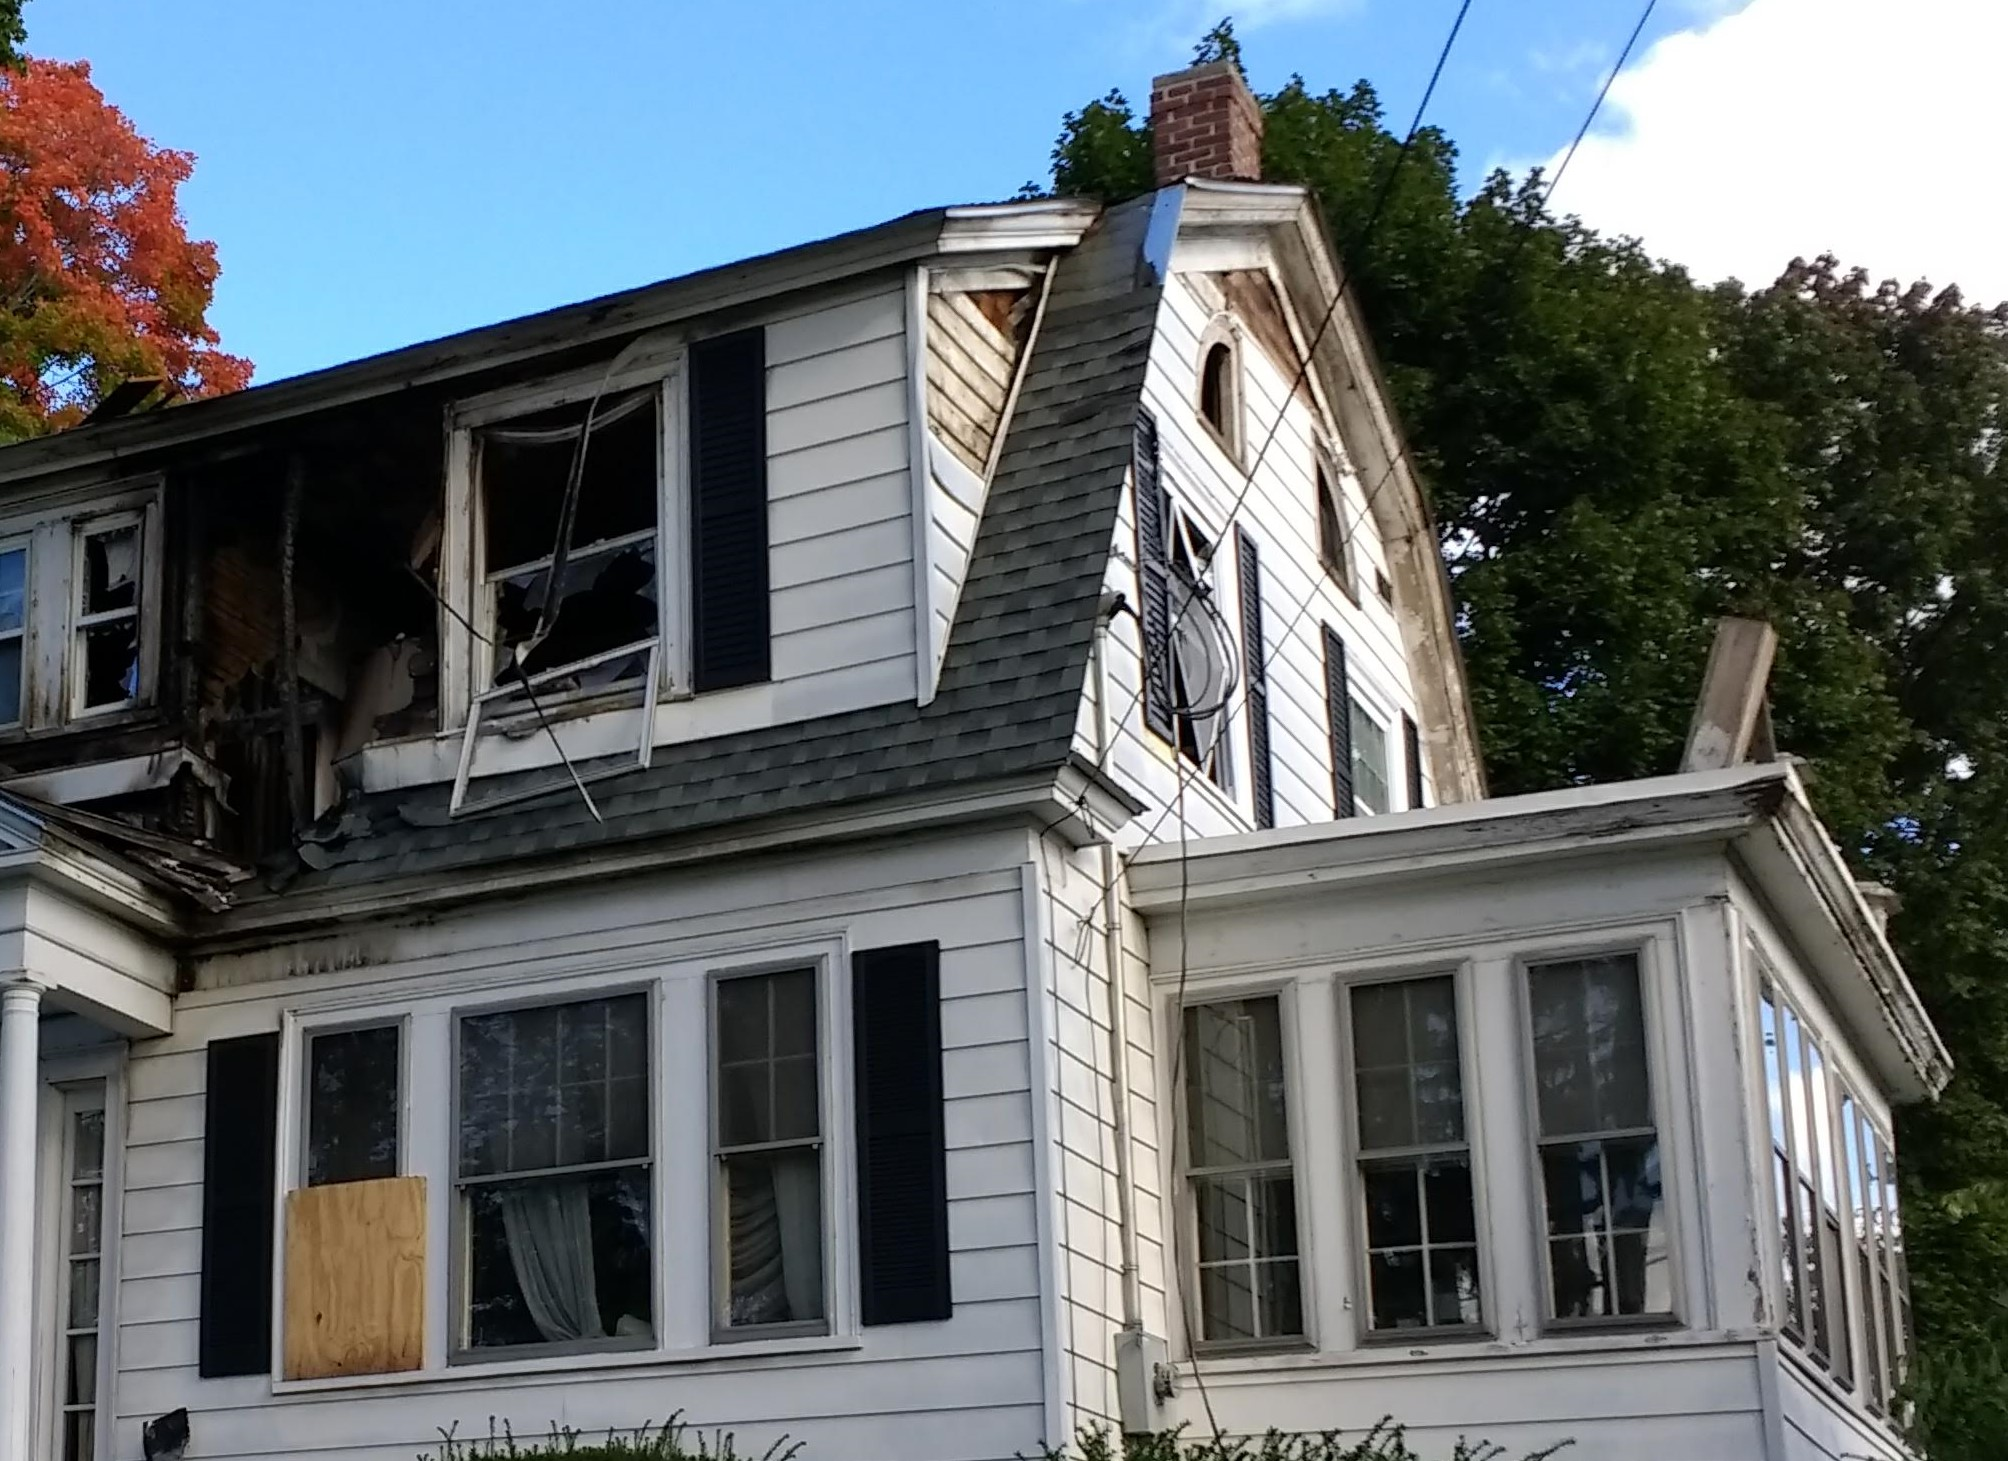 Merrimack Valley gas explosions - Wikipedia